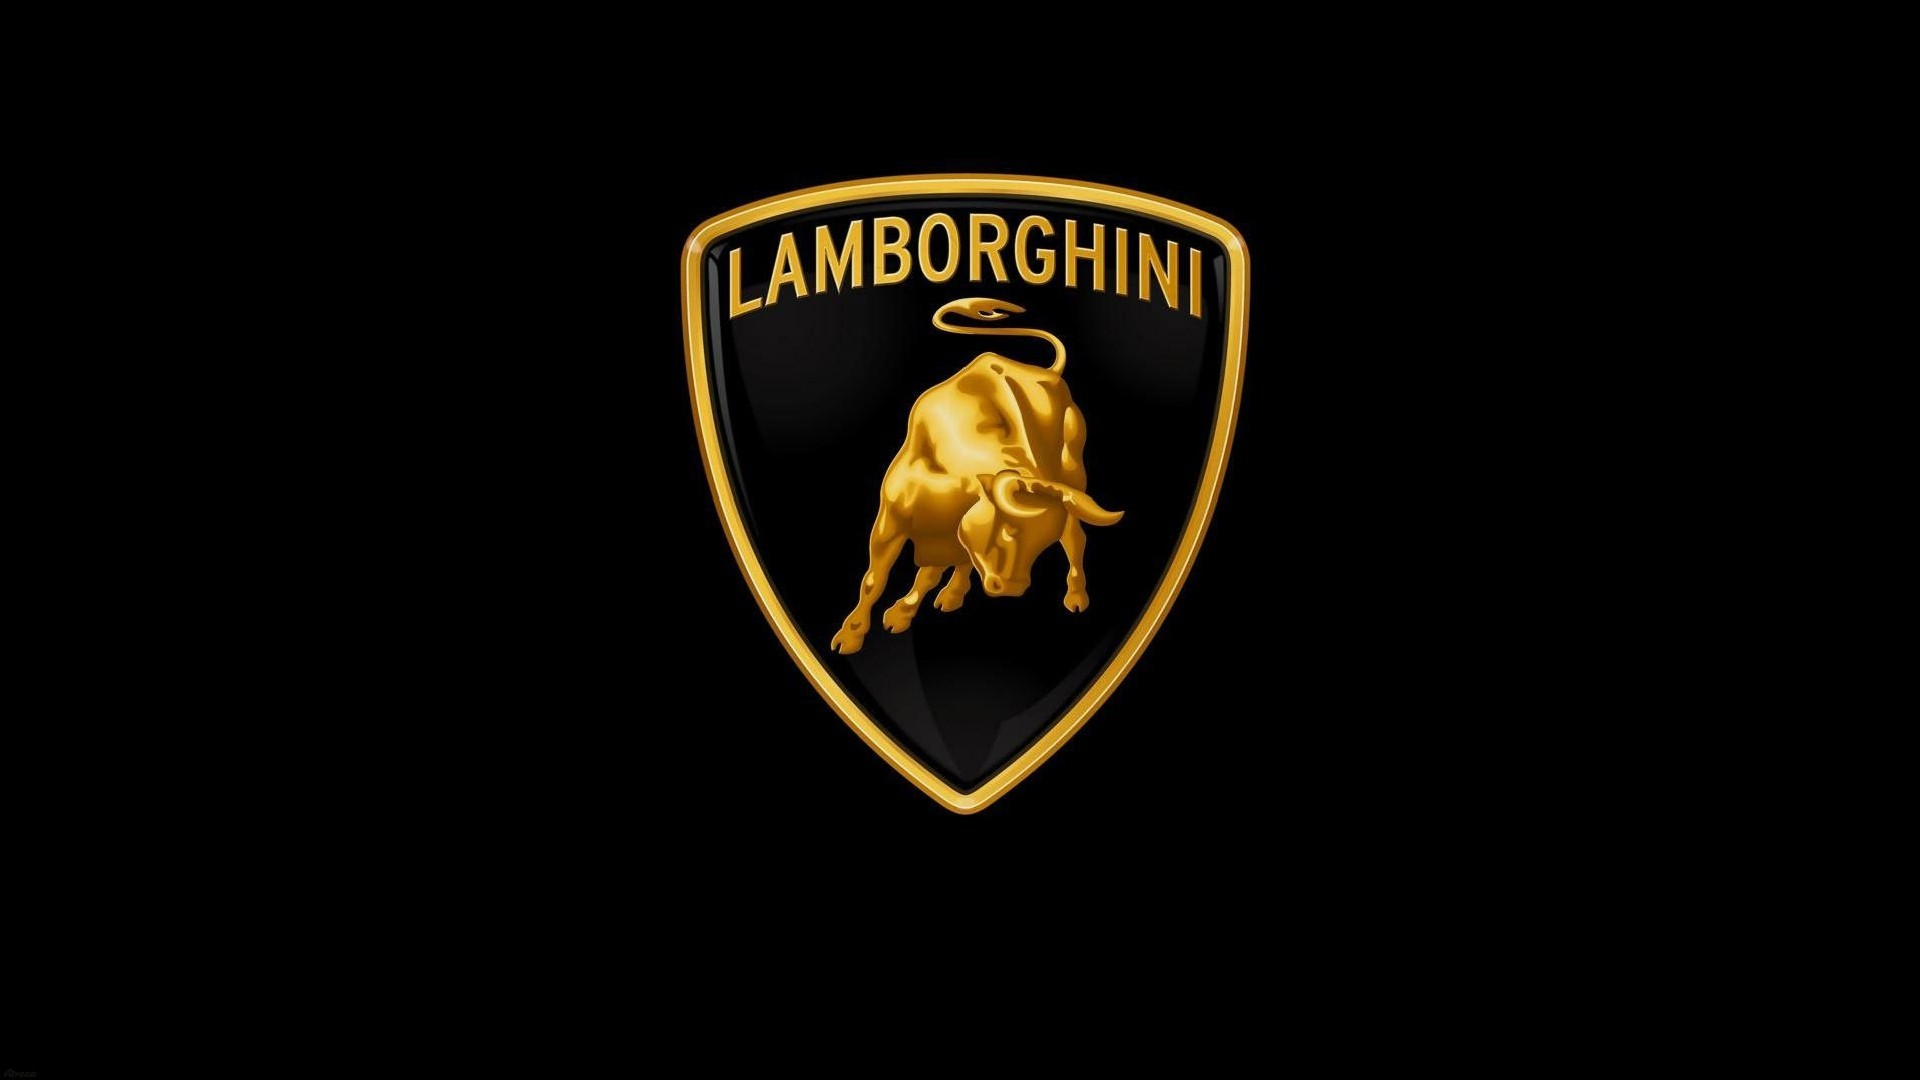 Wallpaper Name  Lamborghini Italian Brand and Manufacturer of Luxury 1920x1080